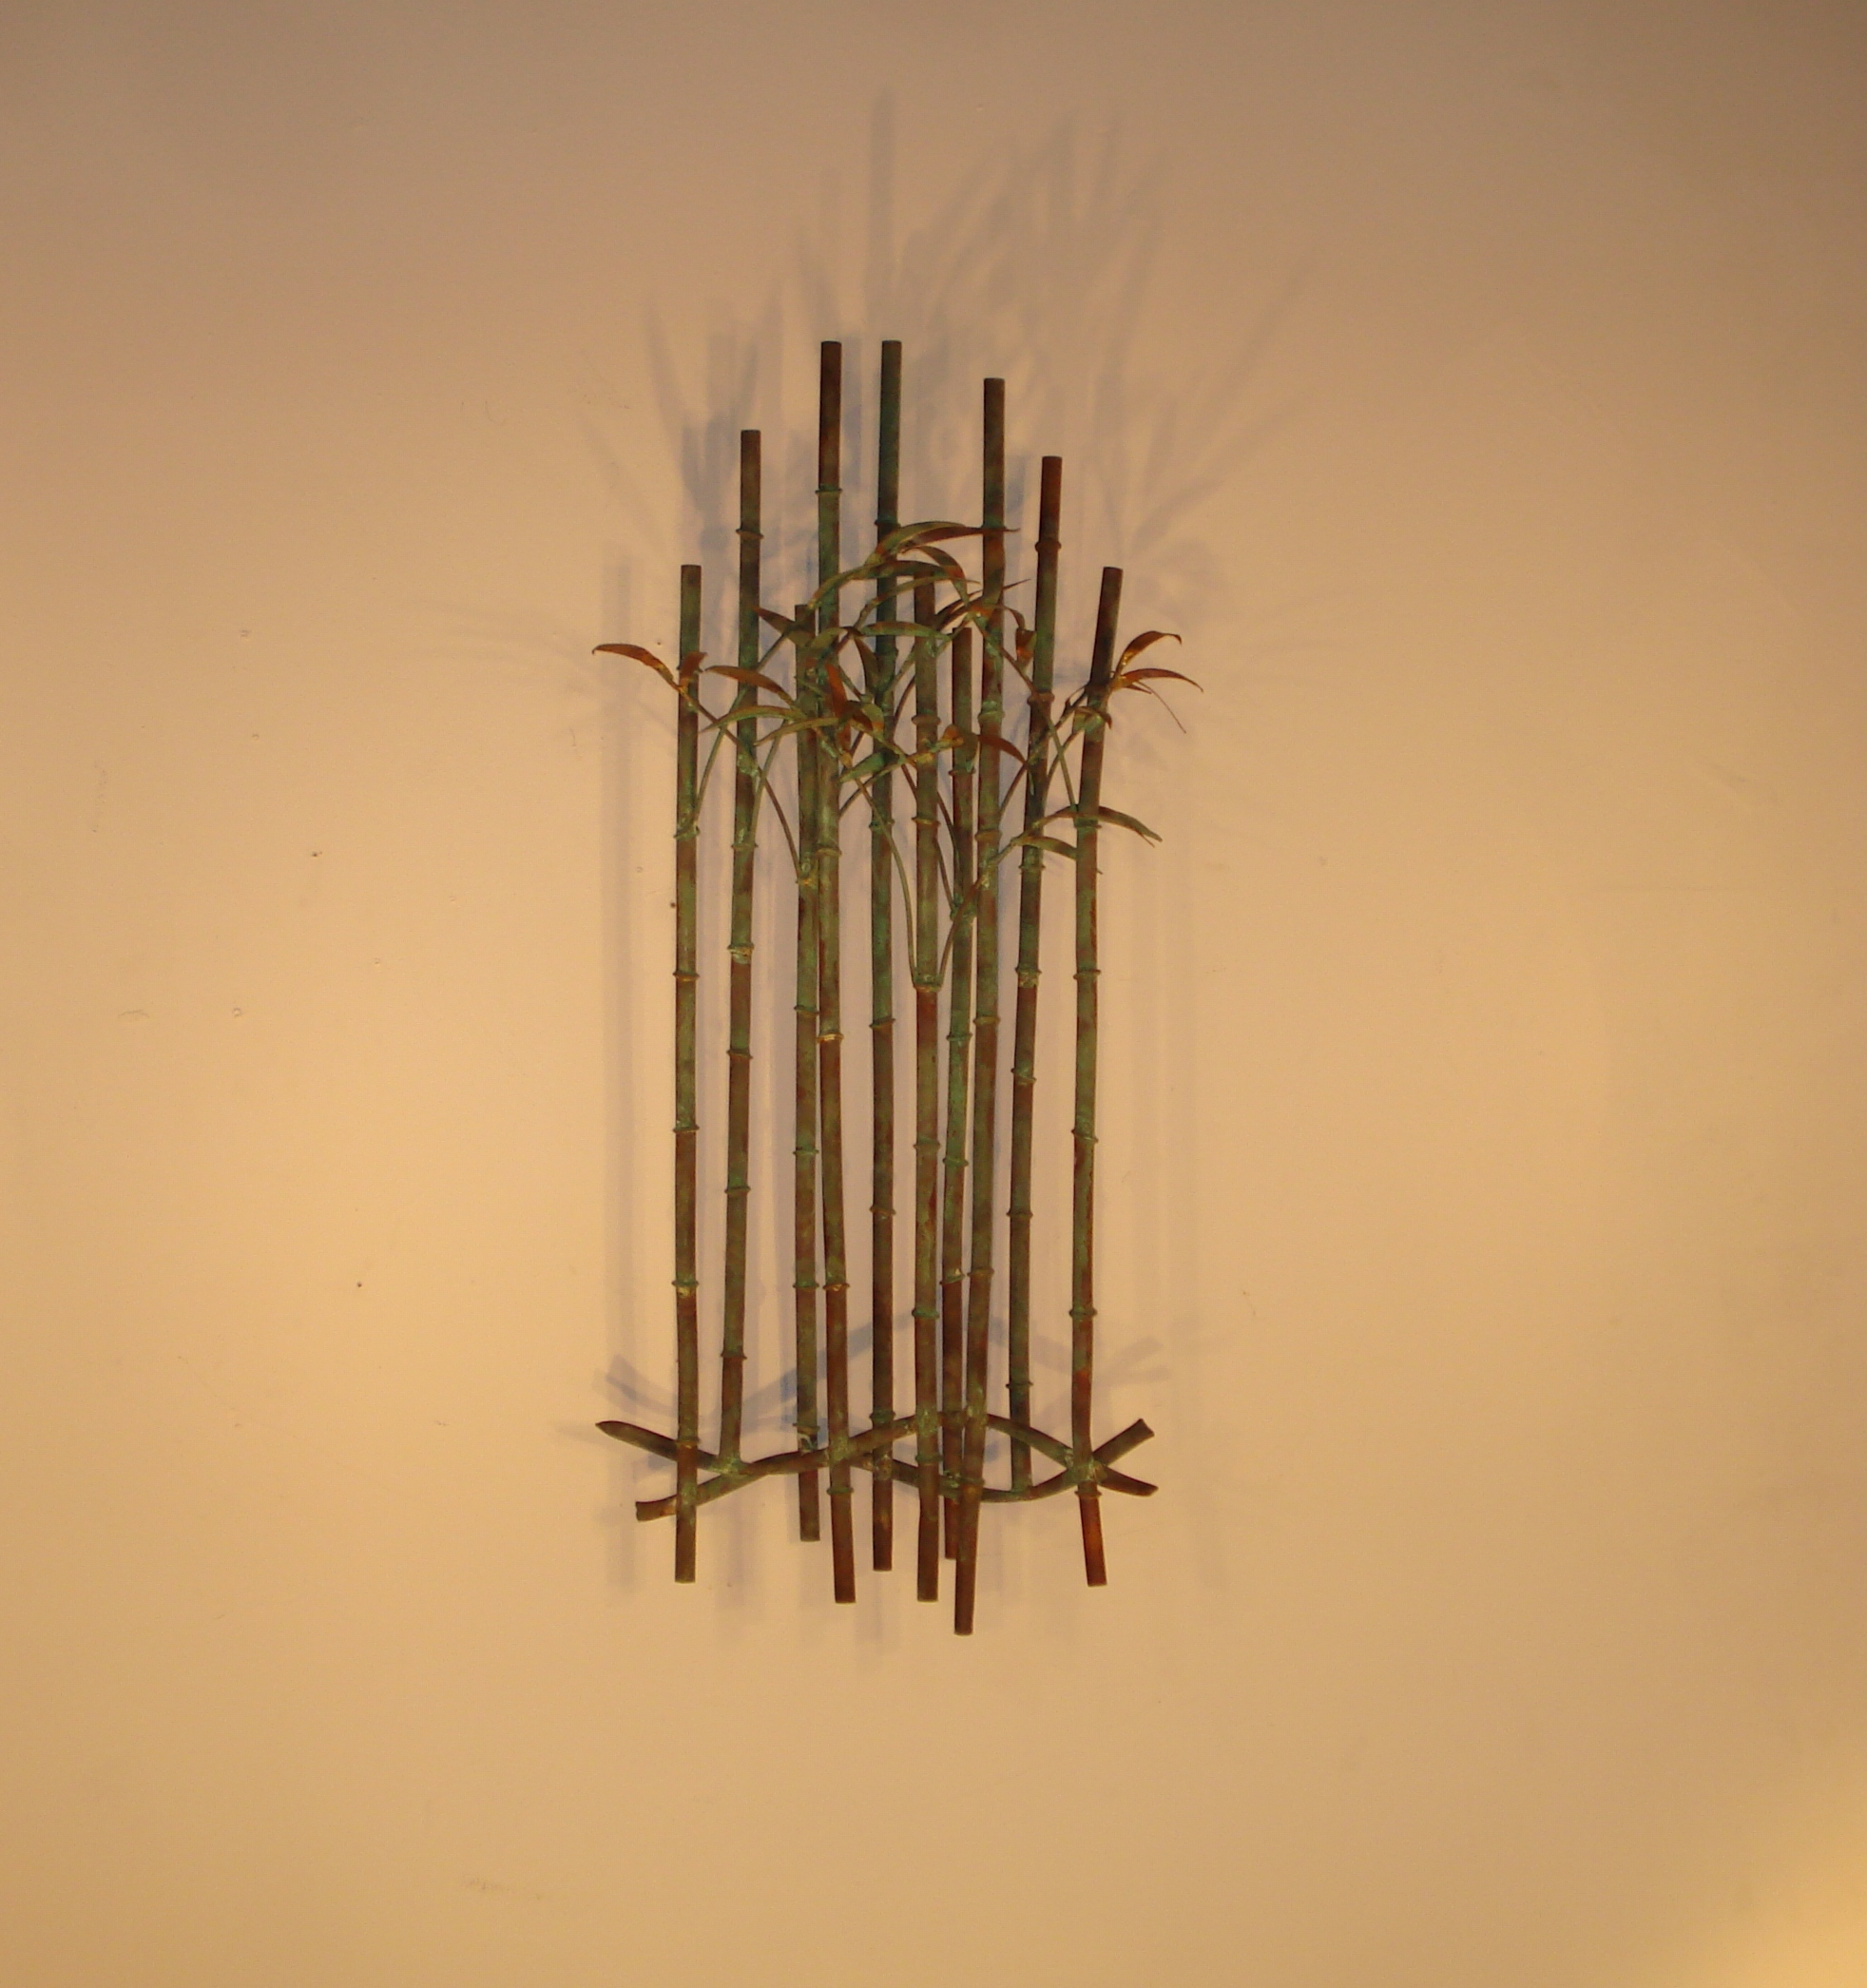 Botanical metal wall decor sculptures and art gurtan designs bamboo wall decor with metal bamboo canes amipublicfo Choice Image